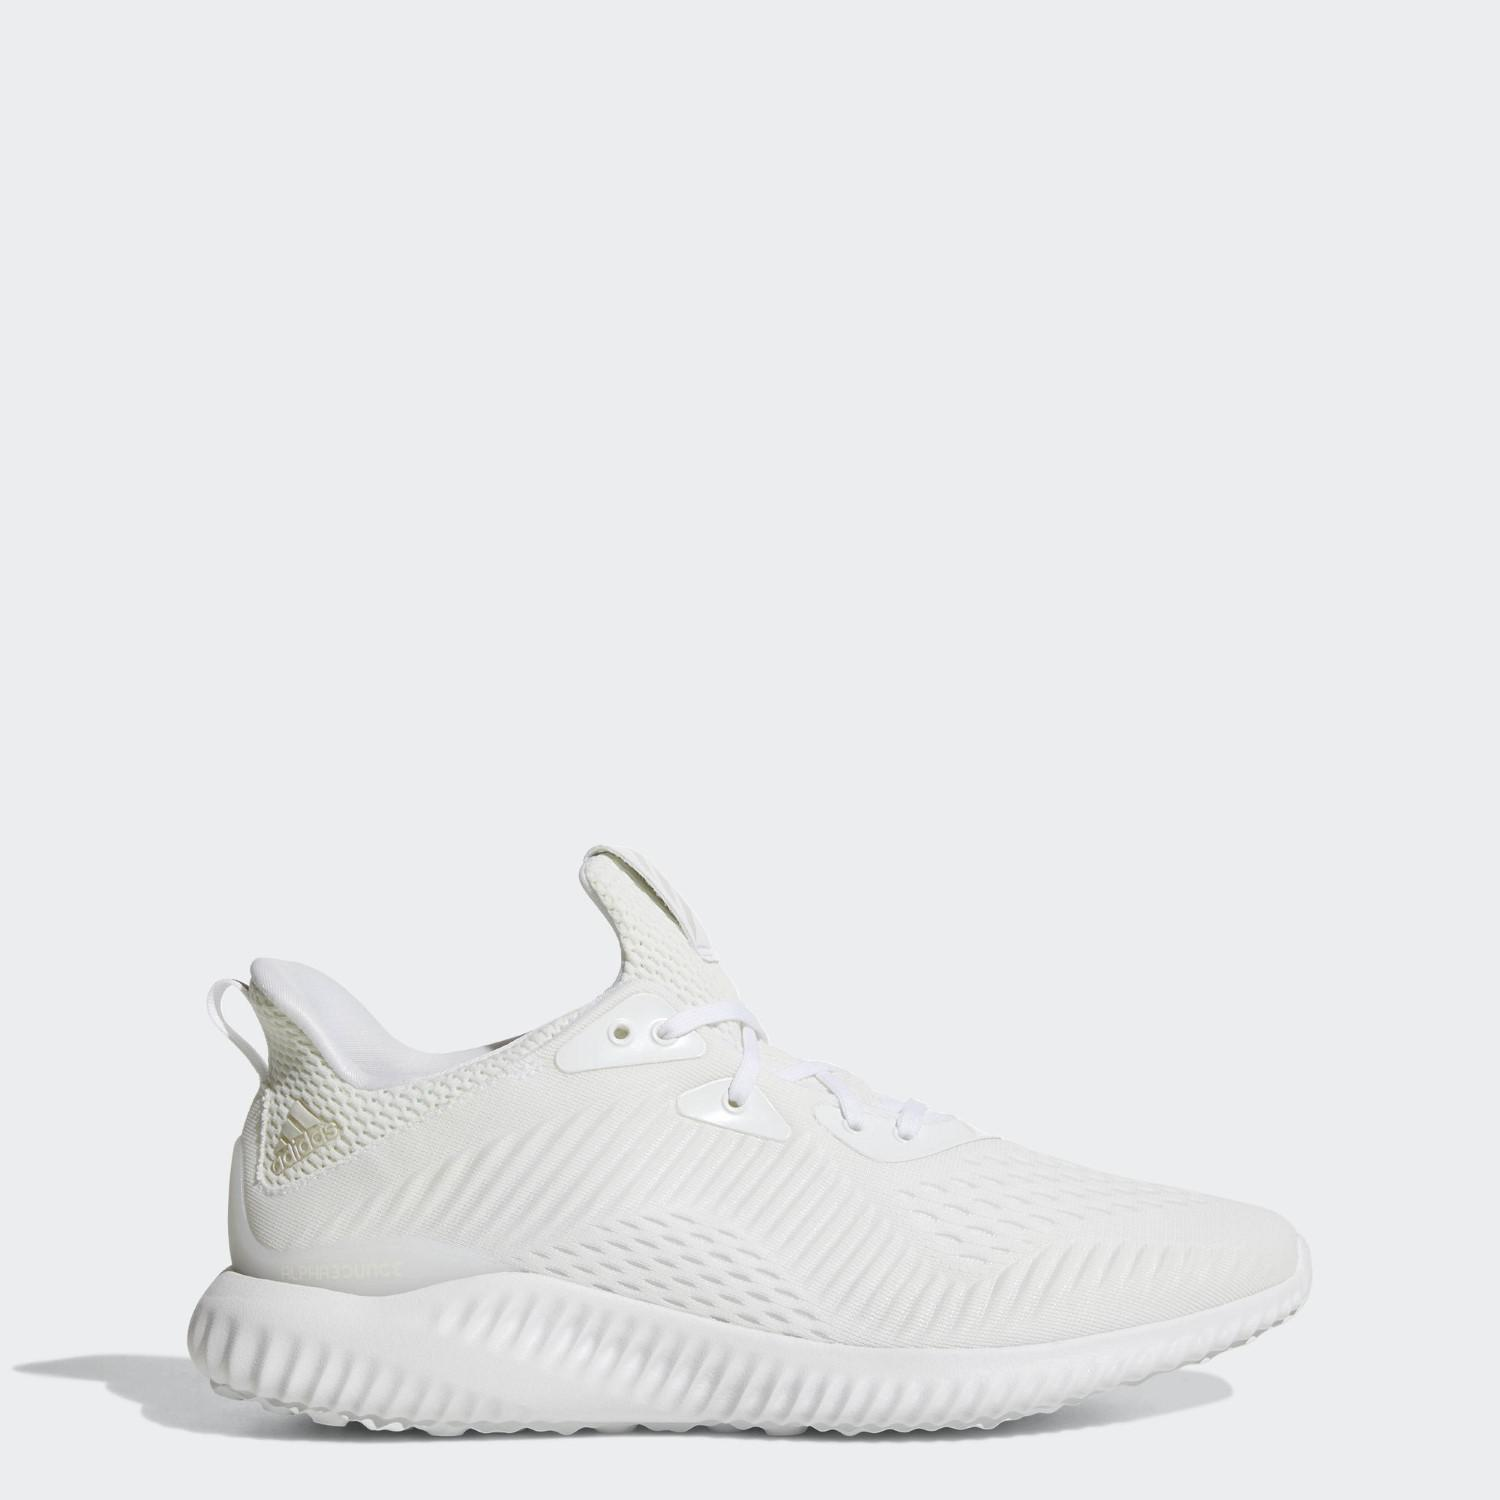 a09b2c929a220 Lyst - adidas Alphabounce Em Running Shoes - - - 9.5 in White for Men